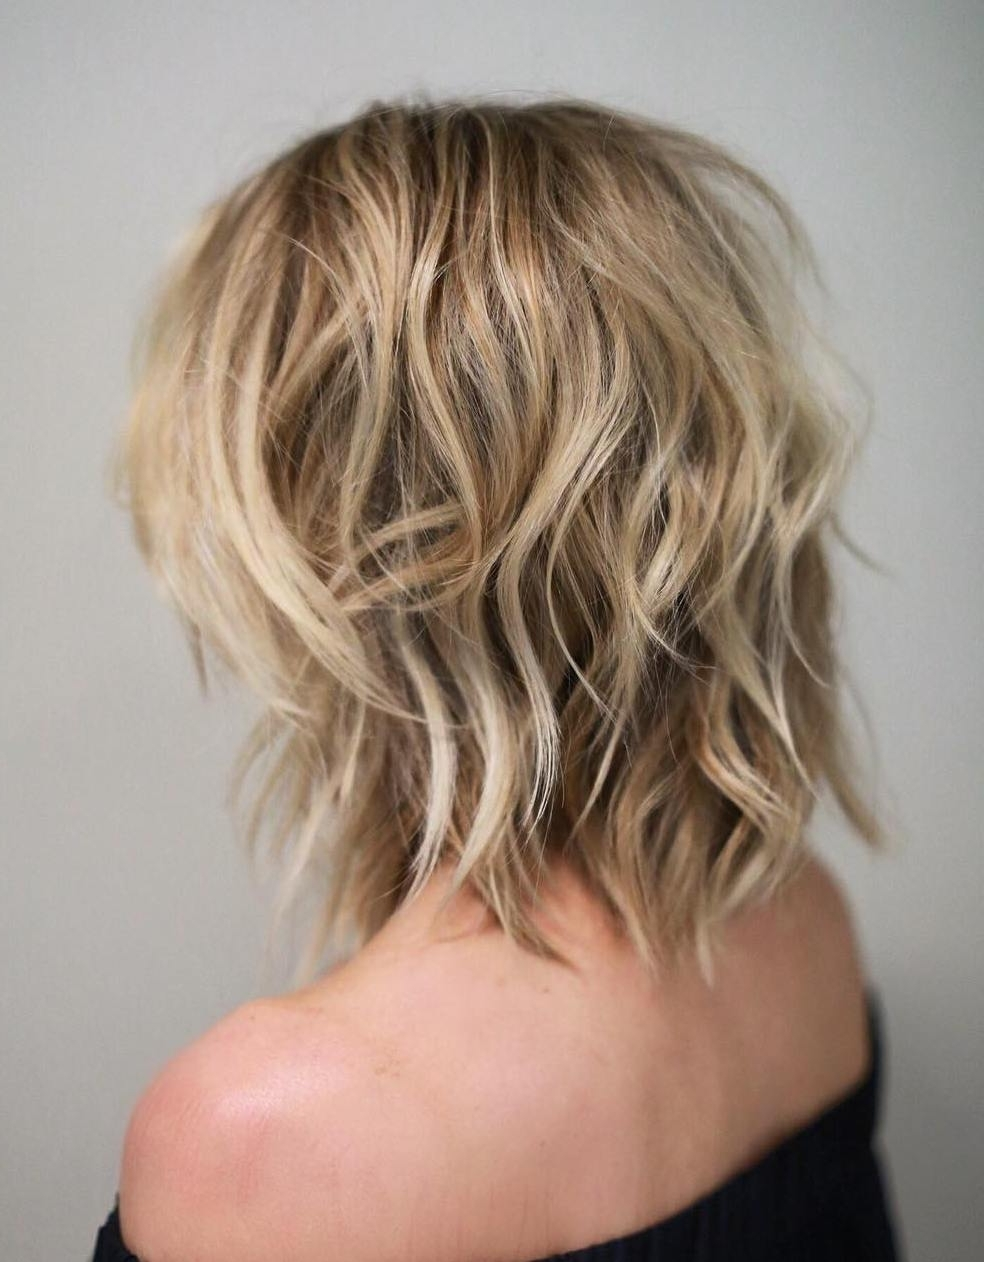 Shag Haircuts And Hairstyles In 2018 — Therighthairstyles With Most Current Shaggy Chin Length Blonde Bob Hairstyles (View 19 of 20)